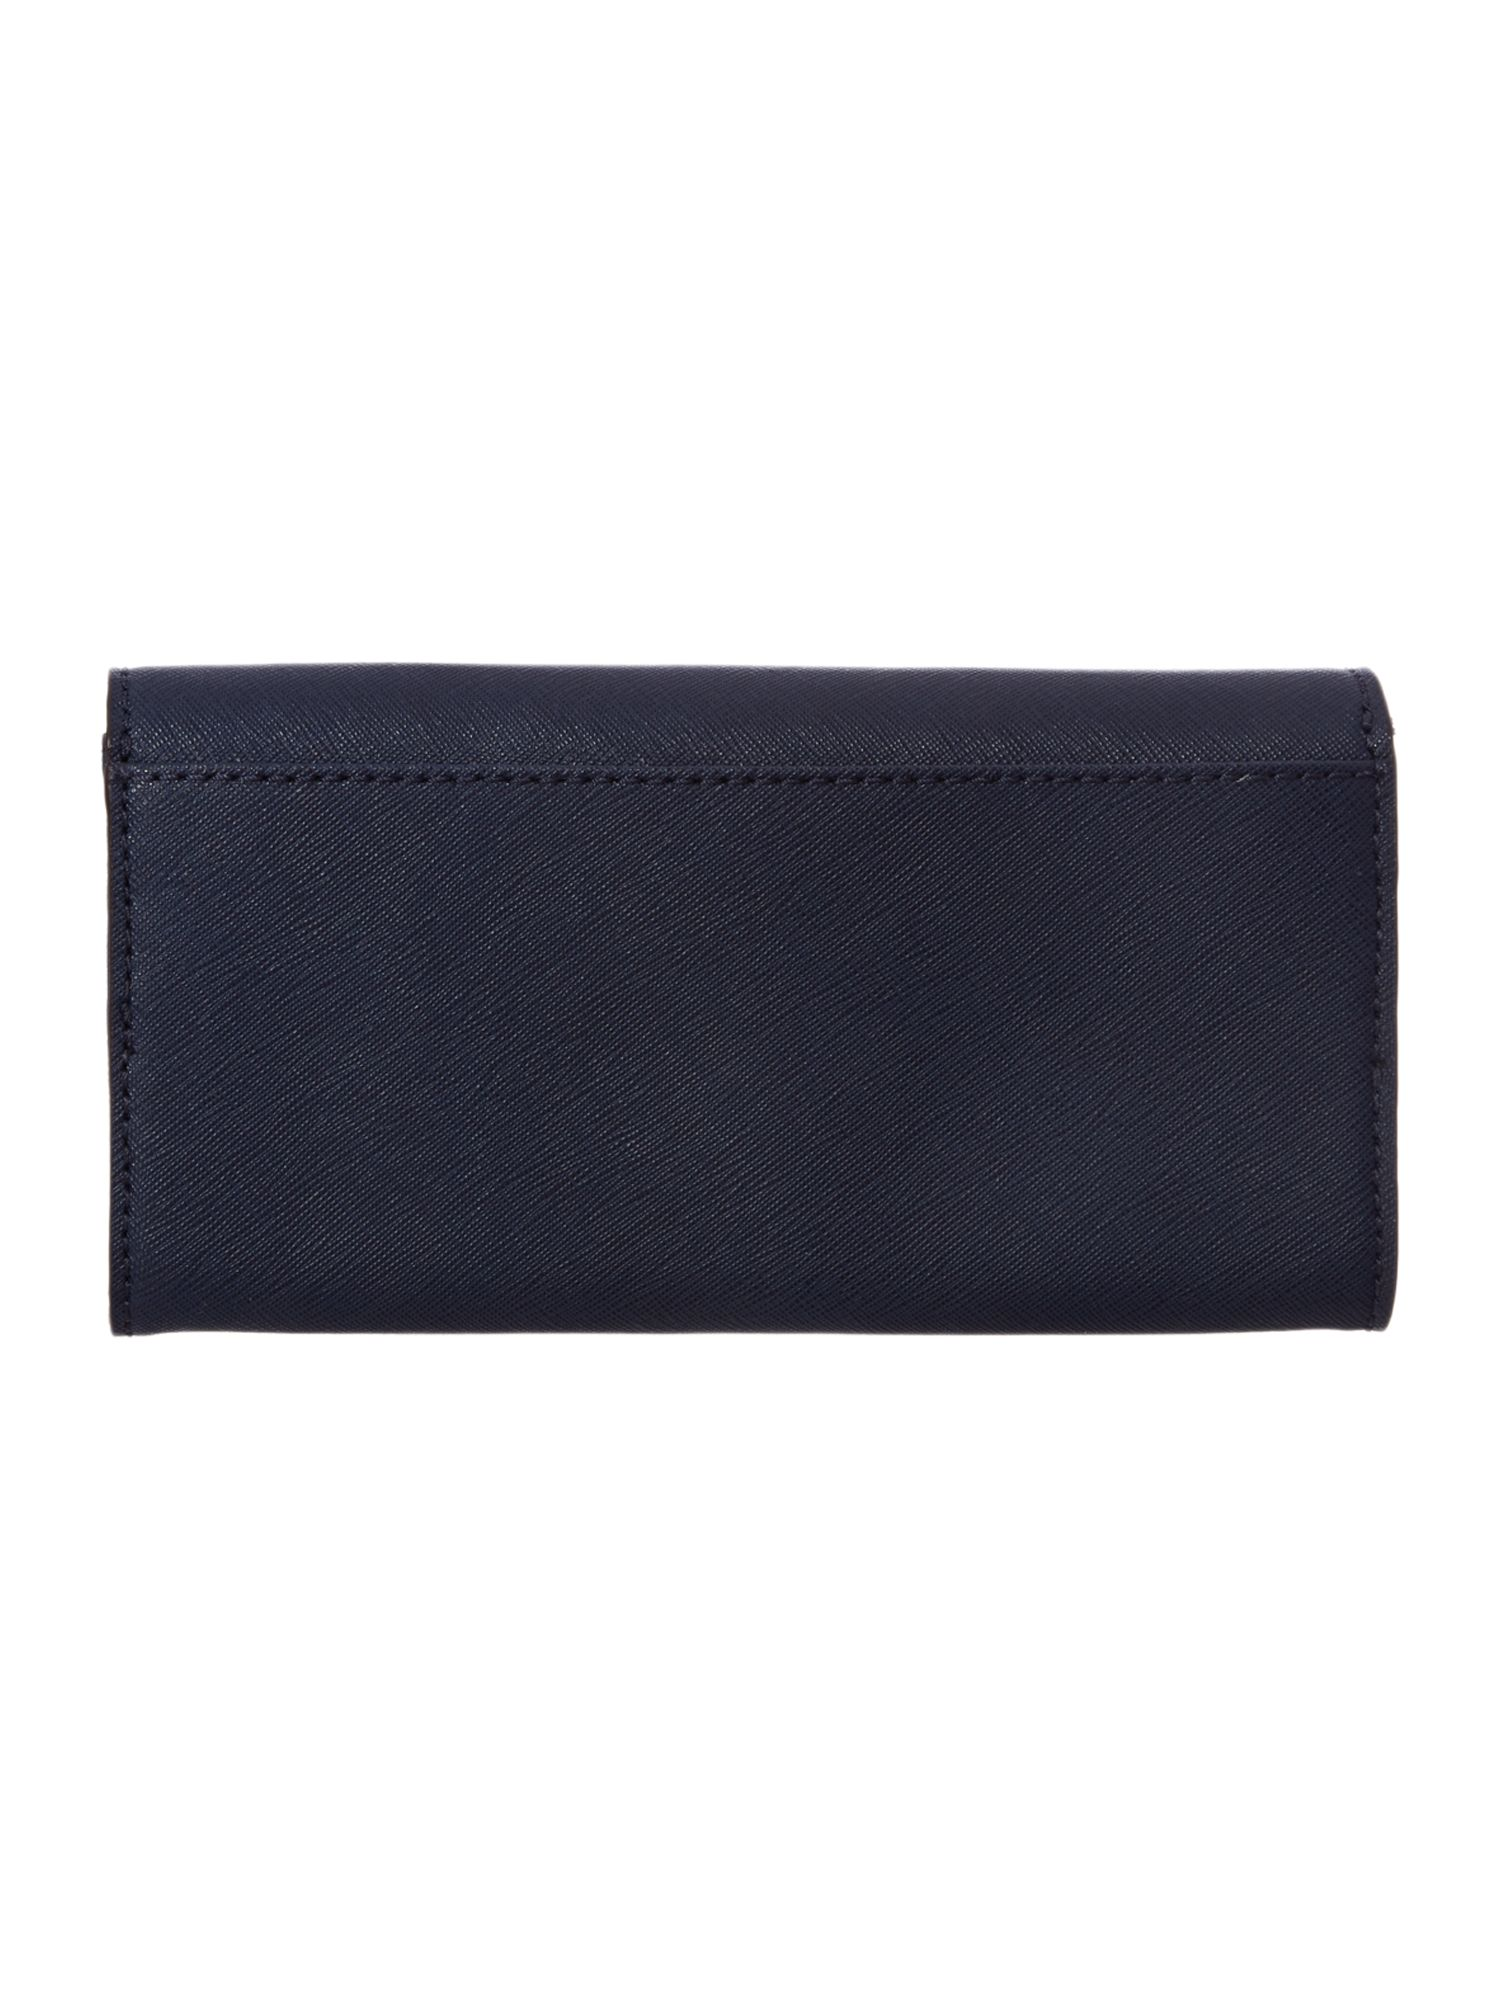 Hamilton large navy flap over purse